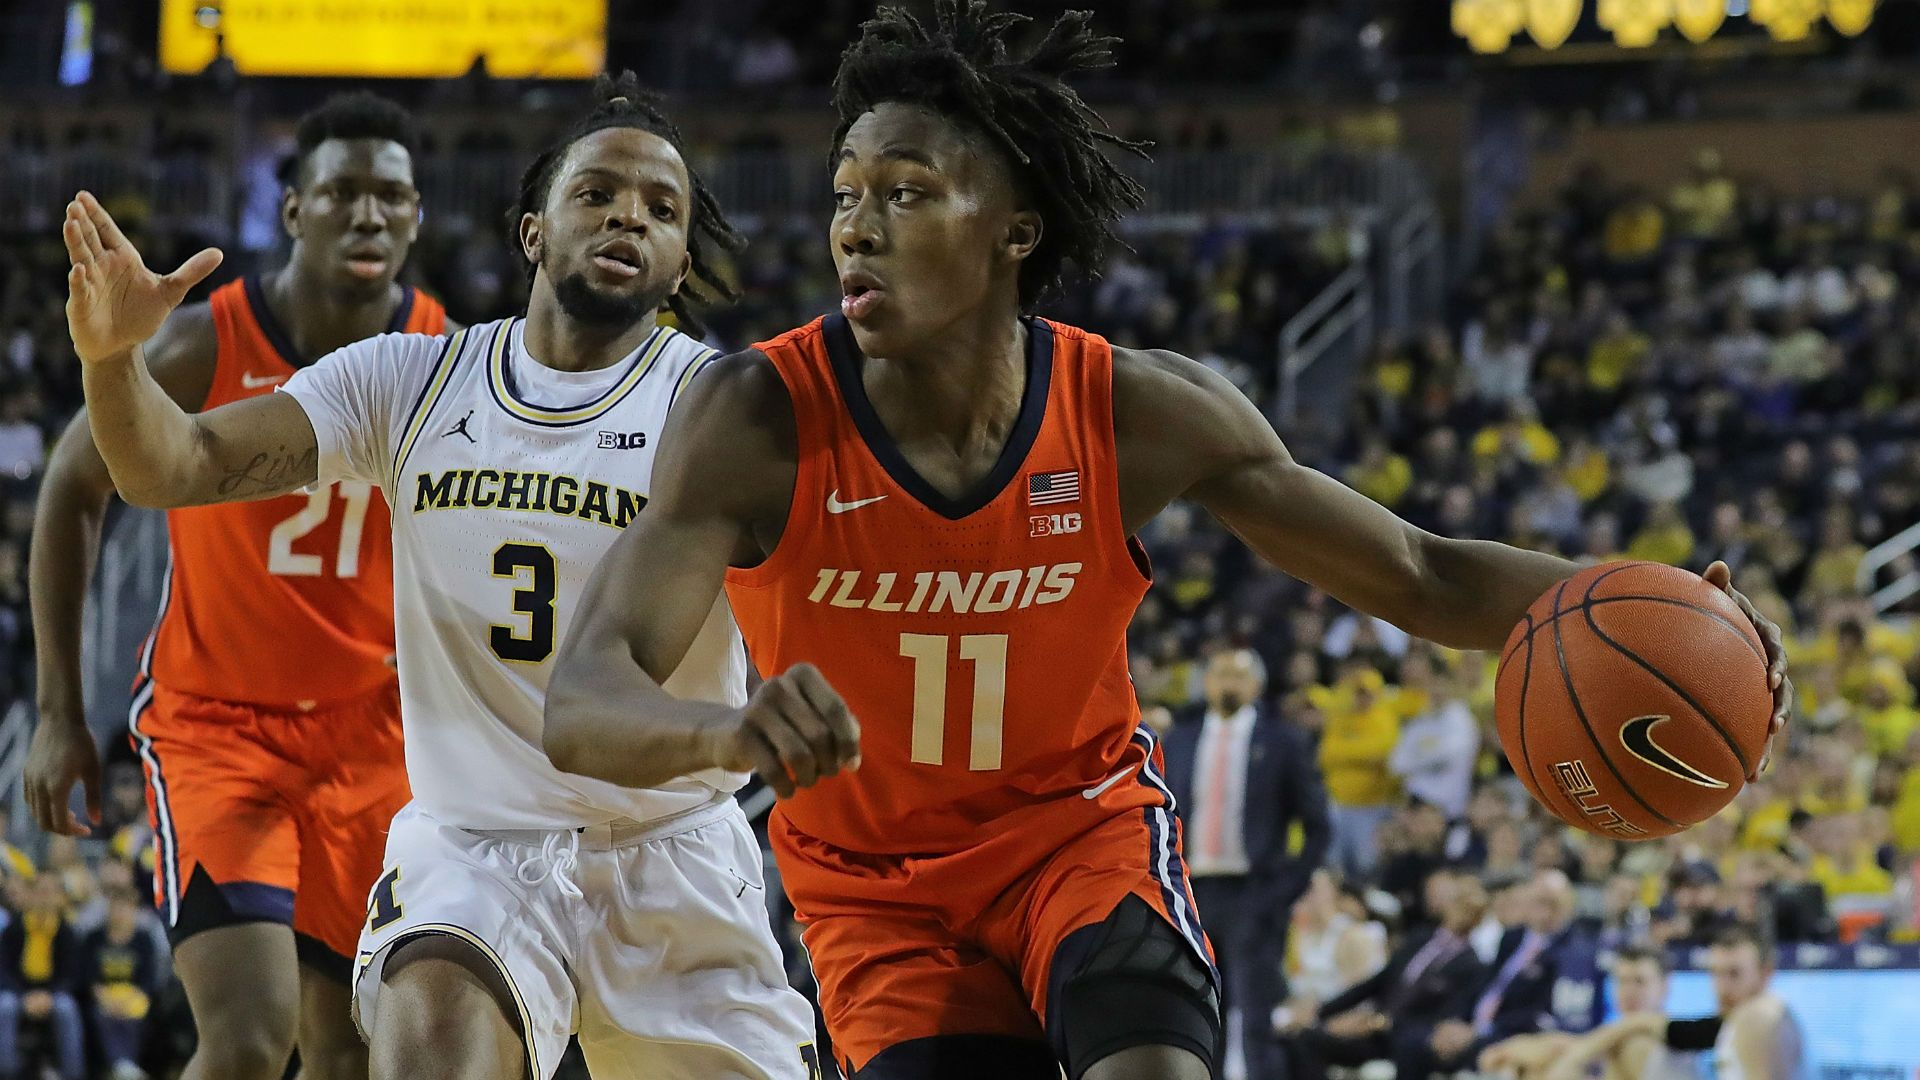 After Withdrawing From Nba Draft Illinois Ayo Dosunmu Must Fix Glaring Flaw In His Game Ayo Dosunmu Has Attempted 240 3 Poi Nba Draft Nba News Basketball News